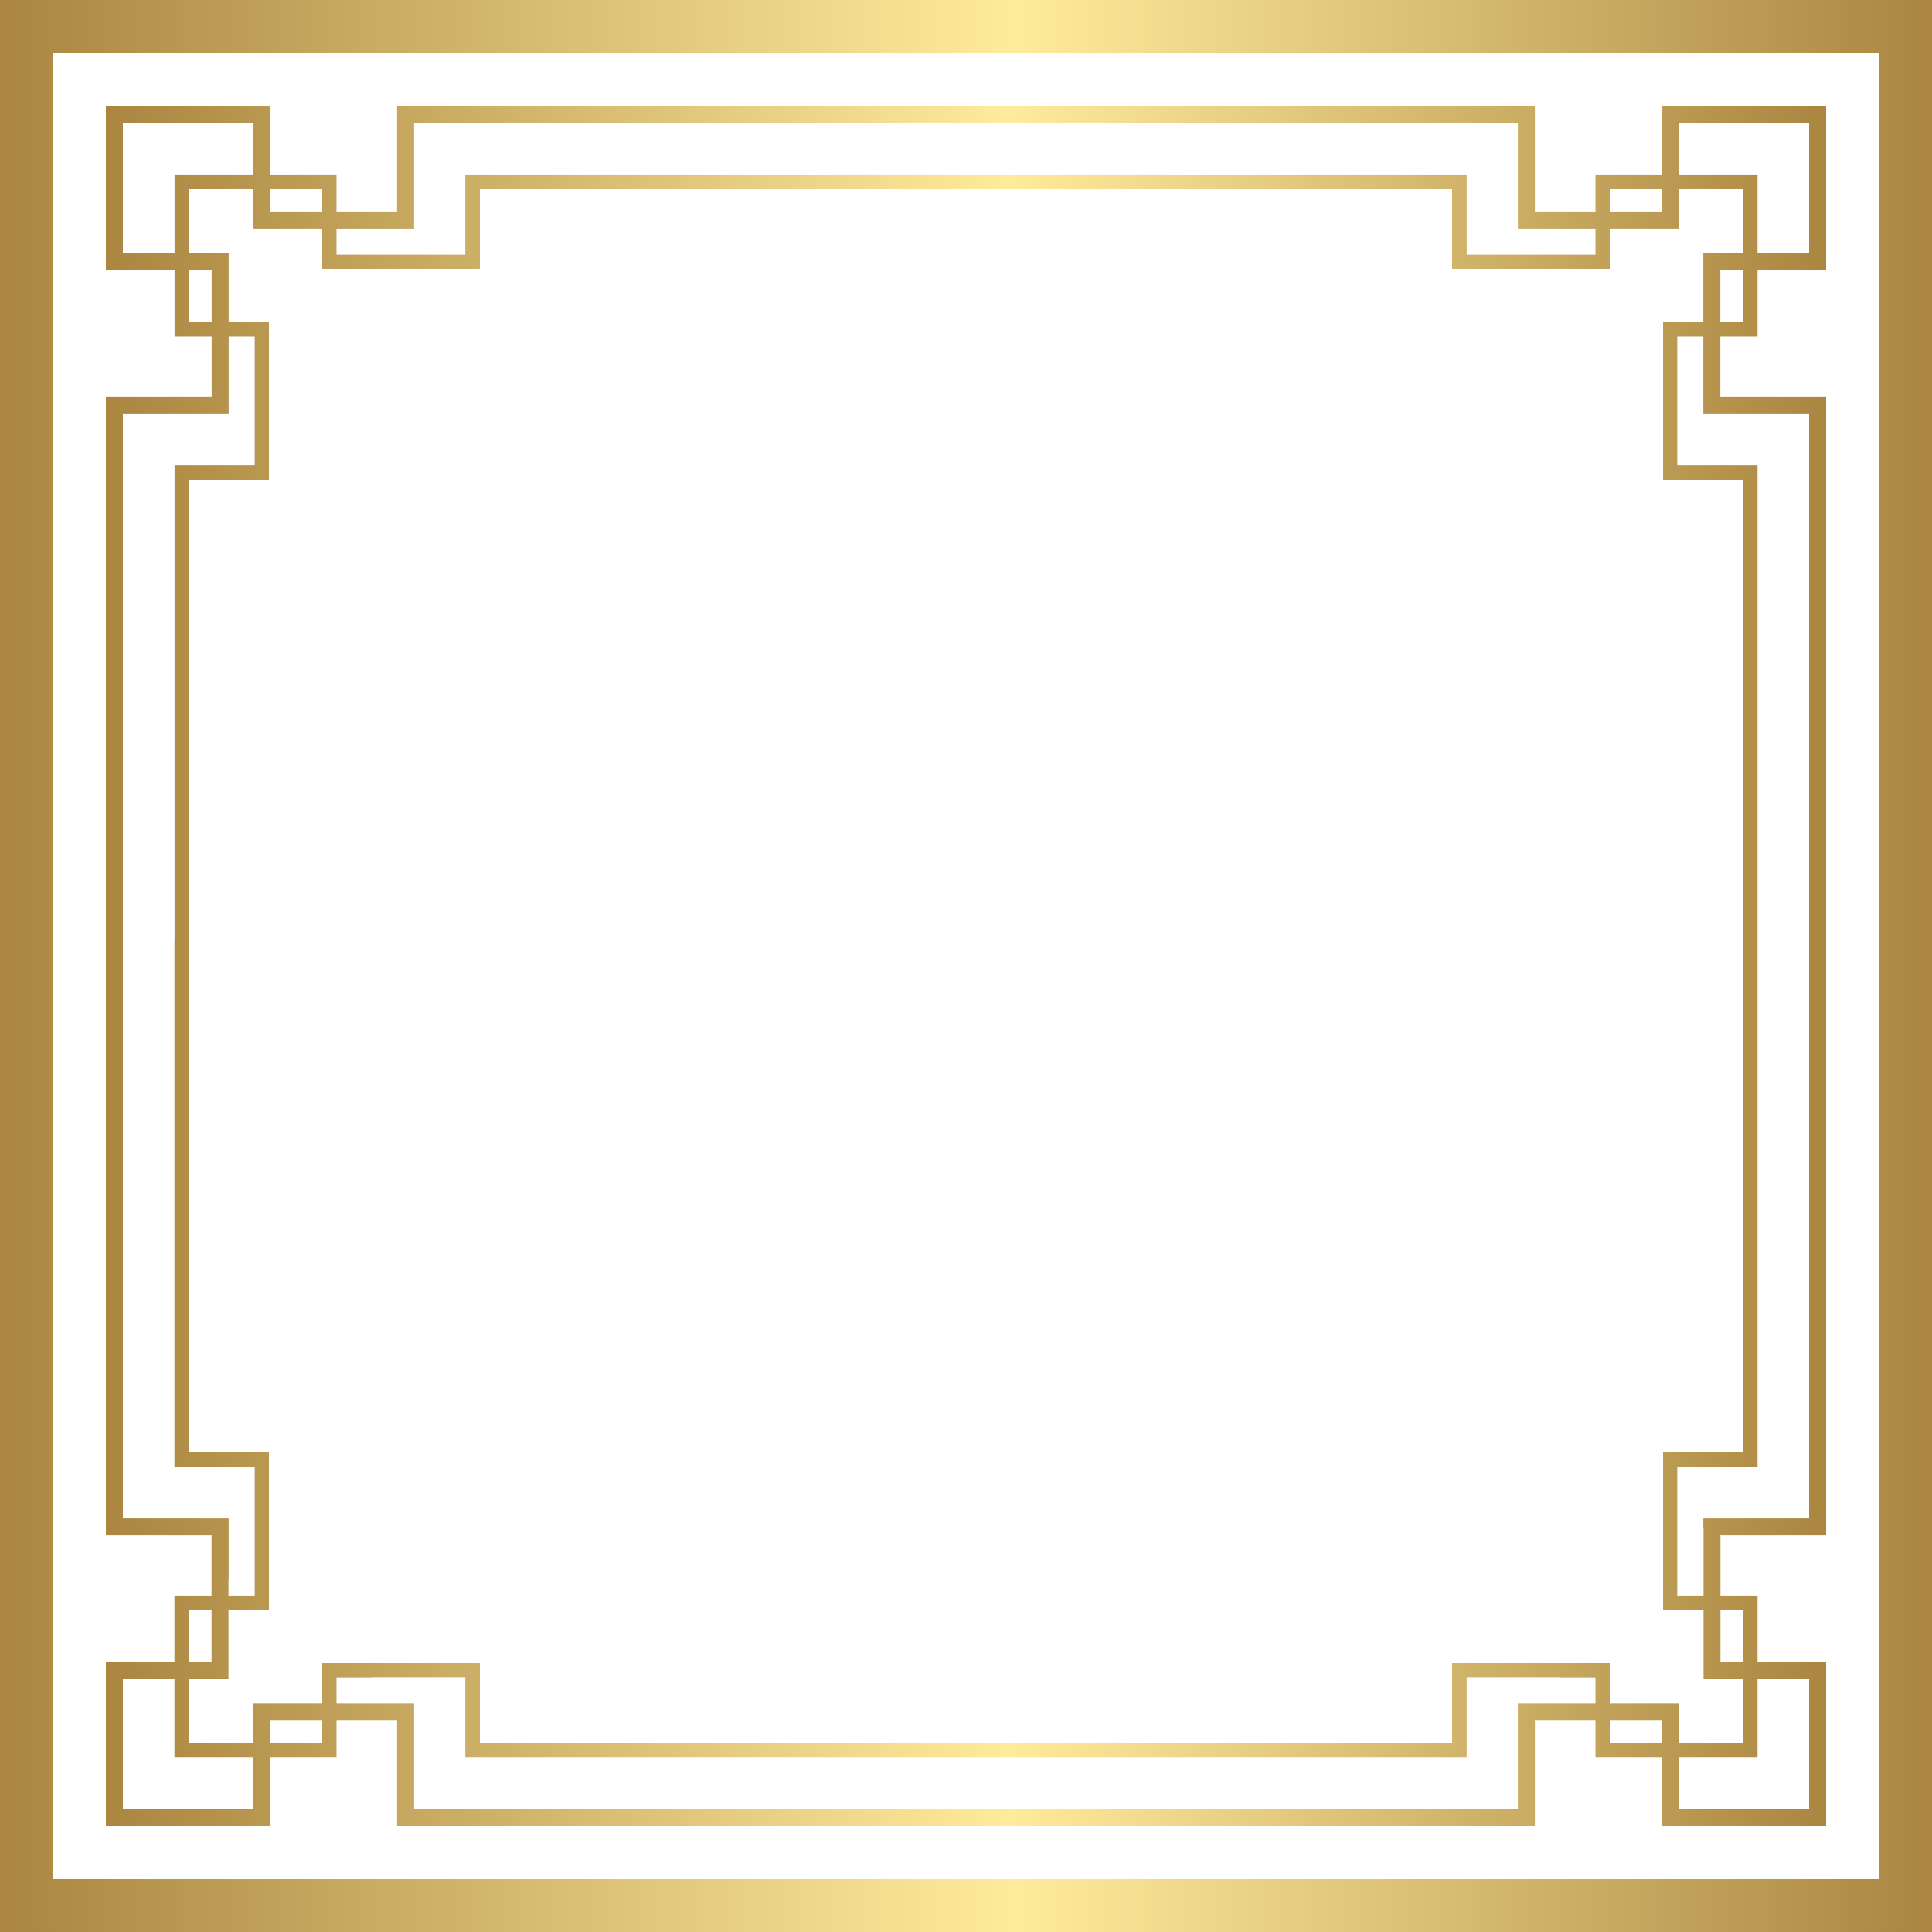 Art deco clipart free download clip royalty free Black and gold art deco clipart images gallery for free download ... clip royalty free